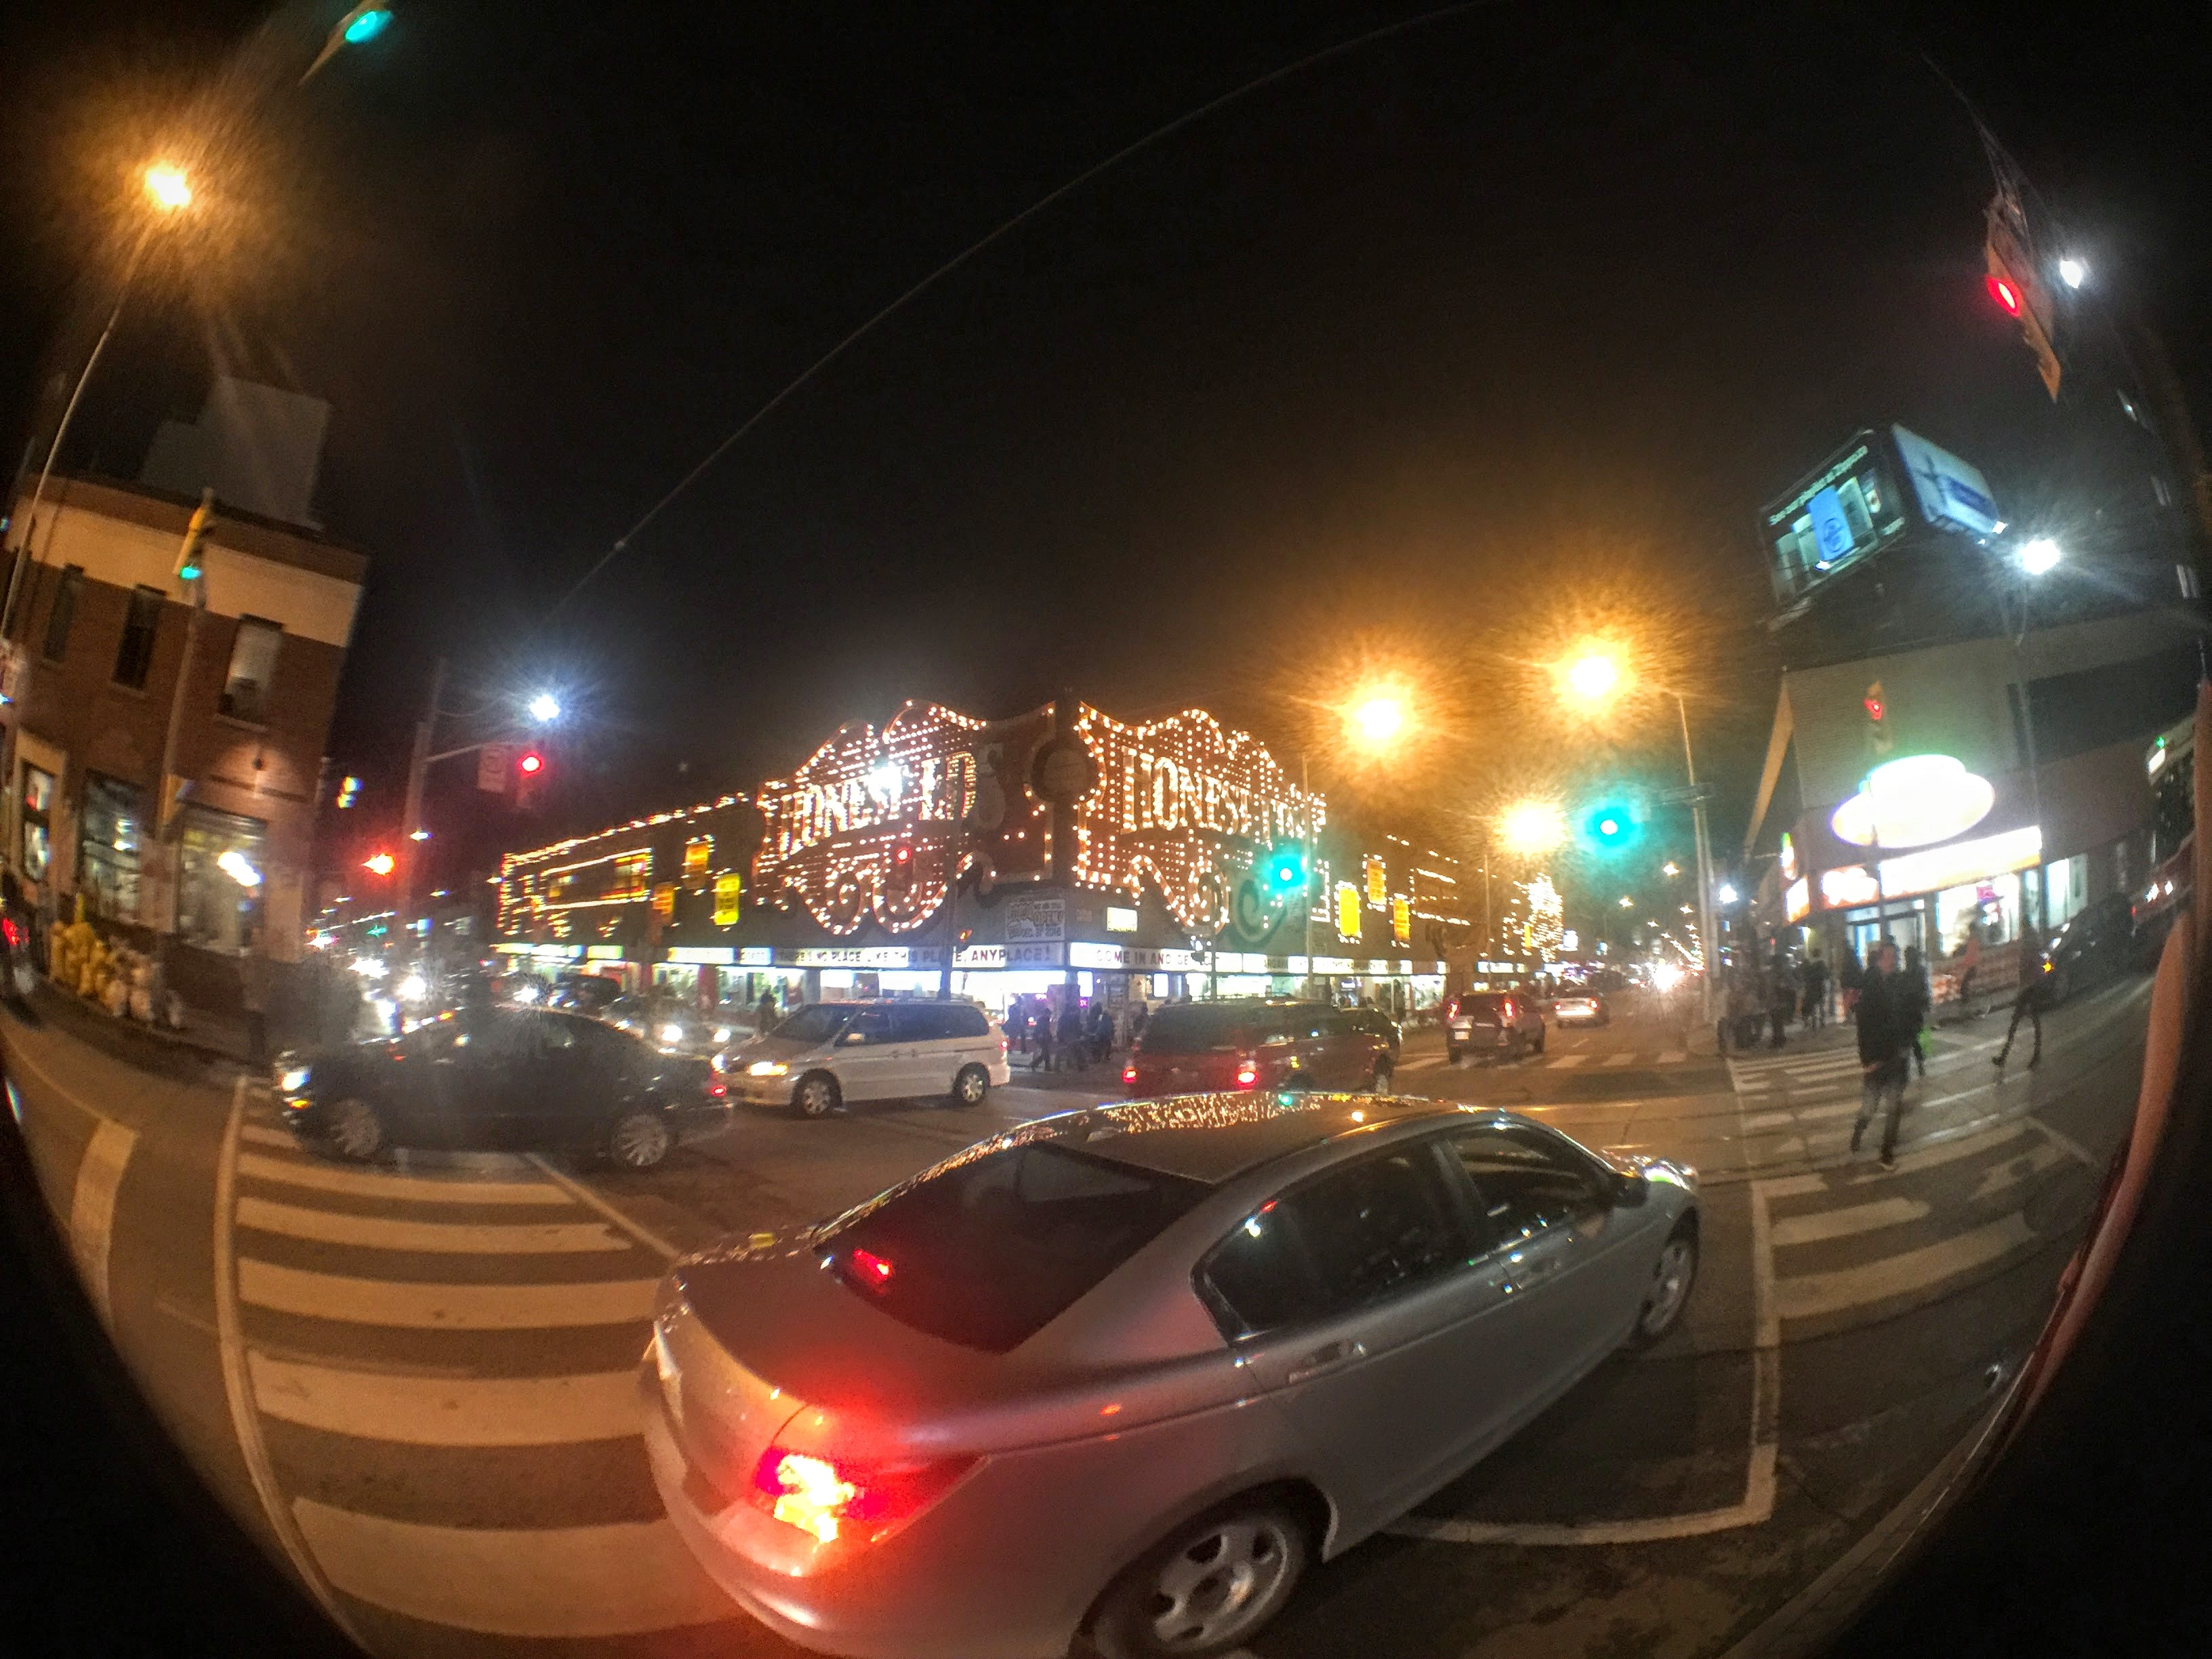 One of Toronto's more iconic (and soon to be gone) landmarks. Shot with the Olloclip's fisheye lens.